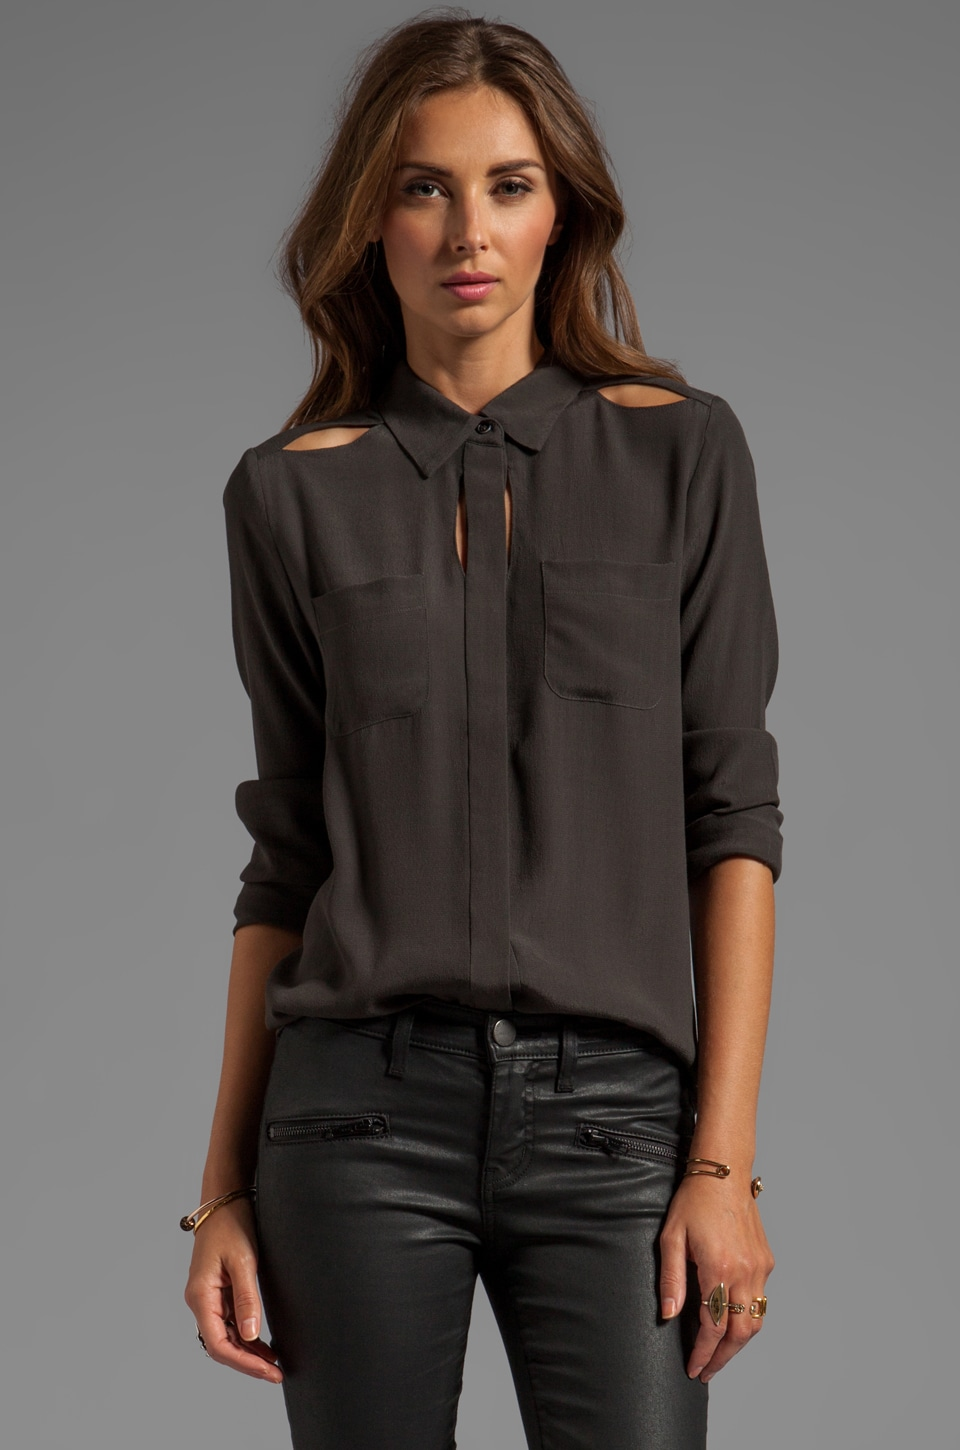 Funktional Fundamental Peek Through Shirt in Charcoal